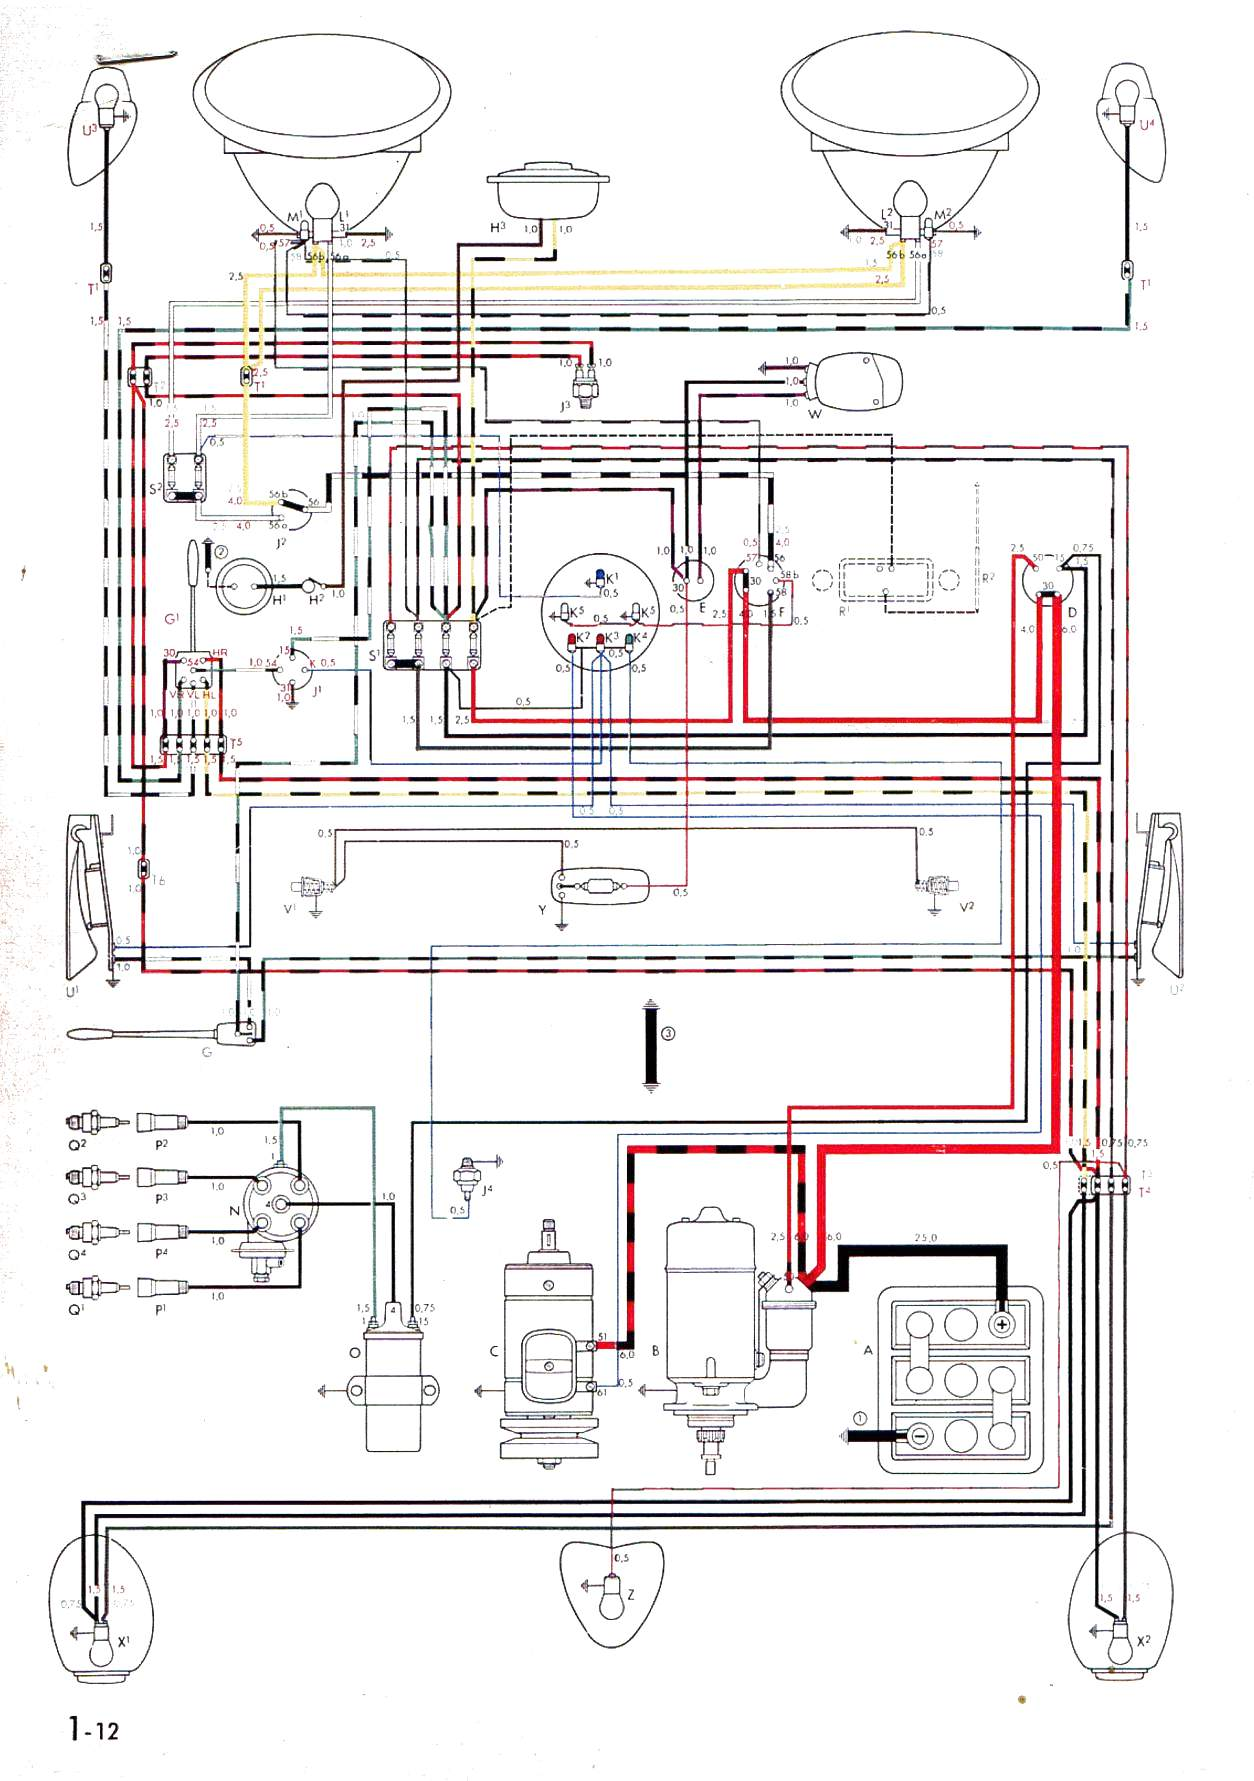 bug 55 57 vw wiring diagrams 1972 beetle wiring diagram at letsshop.co